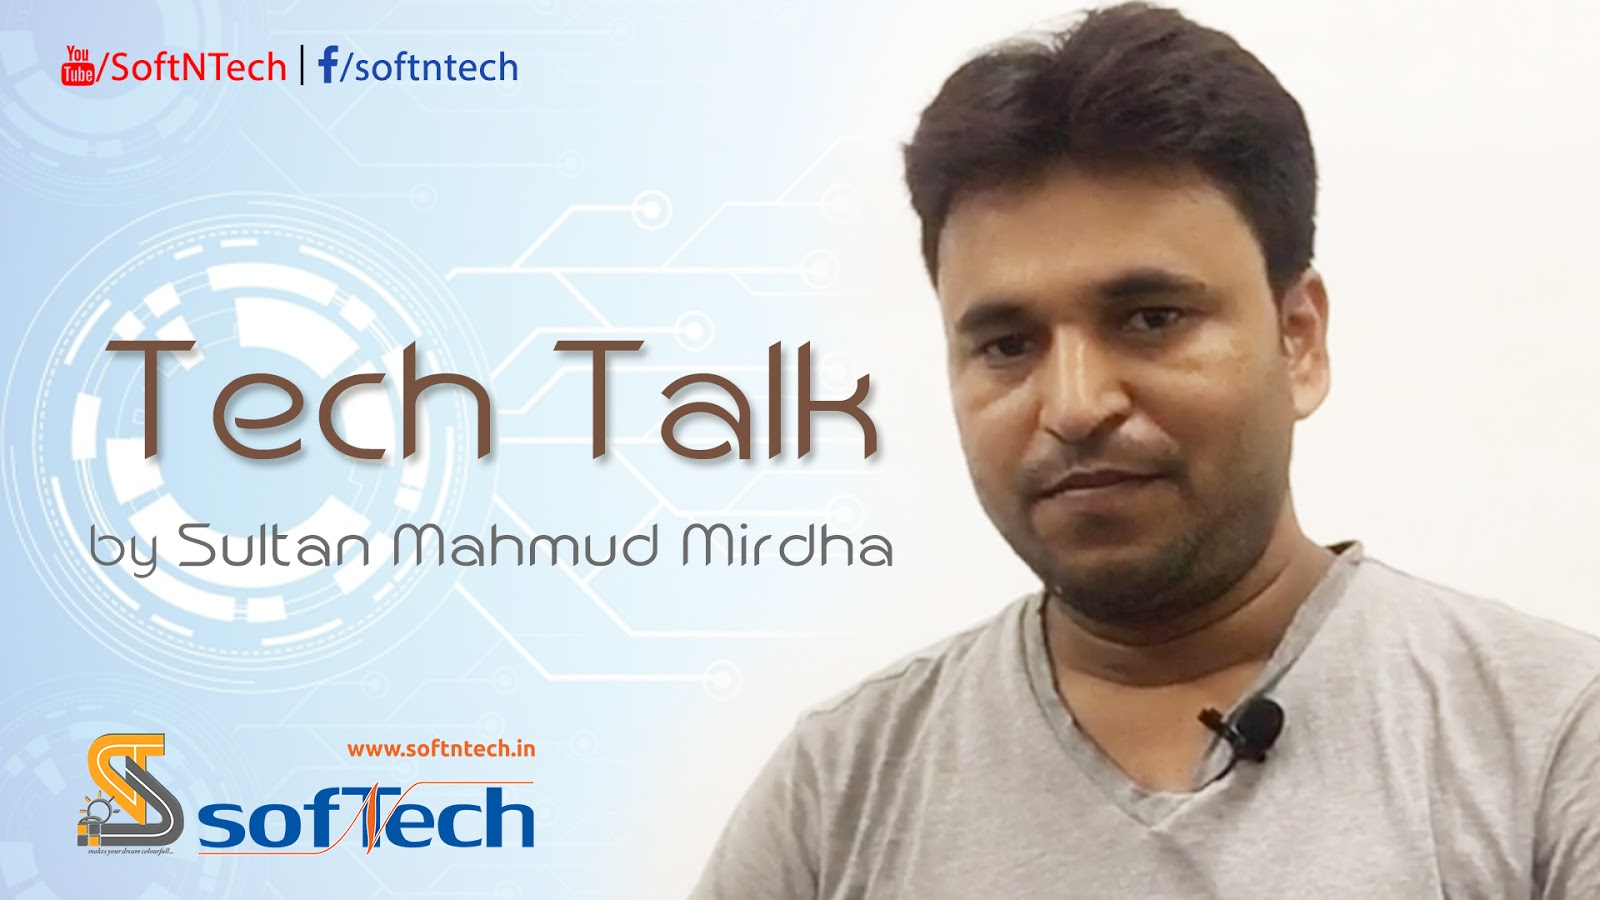 Tech Talk #1 | Discussion on Technology | Sultan Mahmud Mirdha